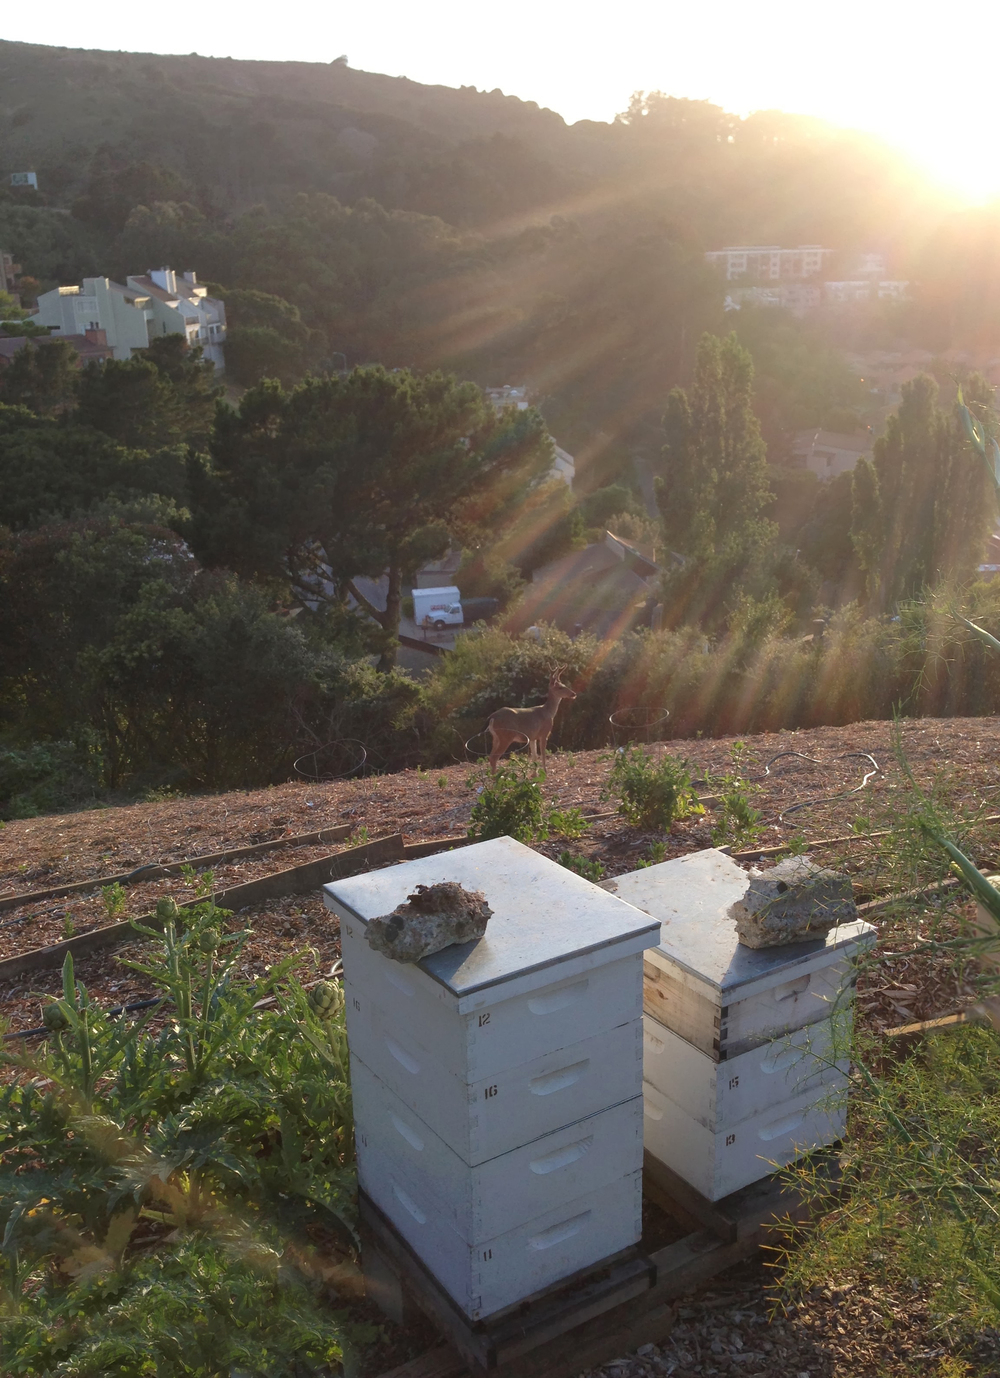 Petition to make beekeeping free and legal